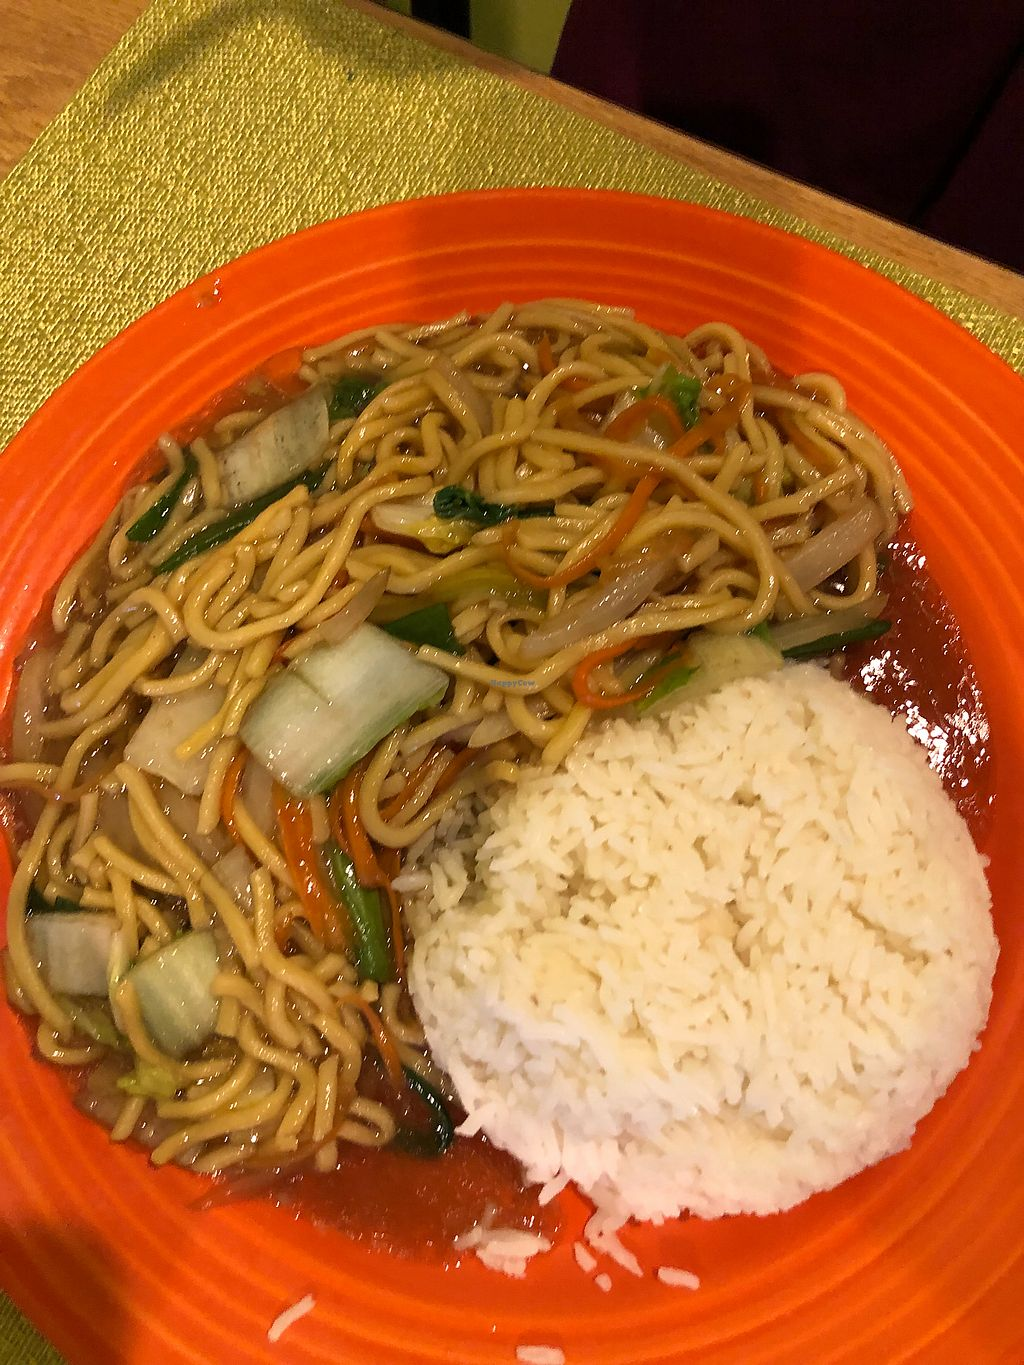 "Photo of Mint Asian Cuisine  by <a href=""/members/profile/Mattsgirlelle"">Mattsgirlelle</a> <br/>Veggie Lo Mein  <br/> January 5, 2018  - <a href='/contact/abuse/image/105322/343076'>Report</a>"